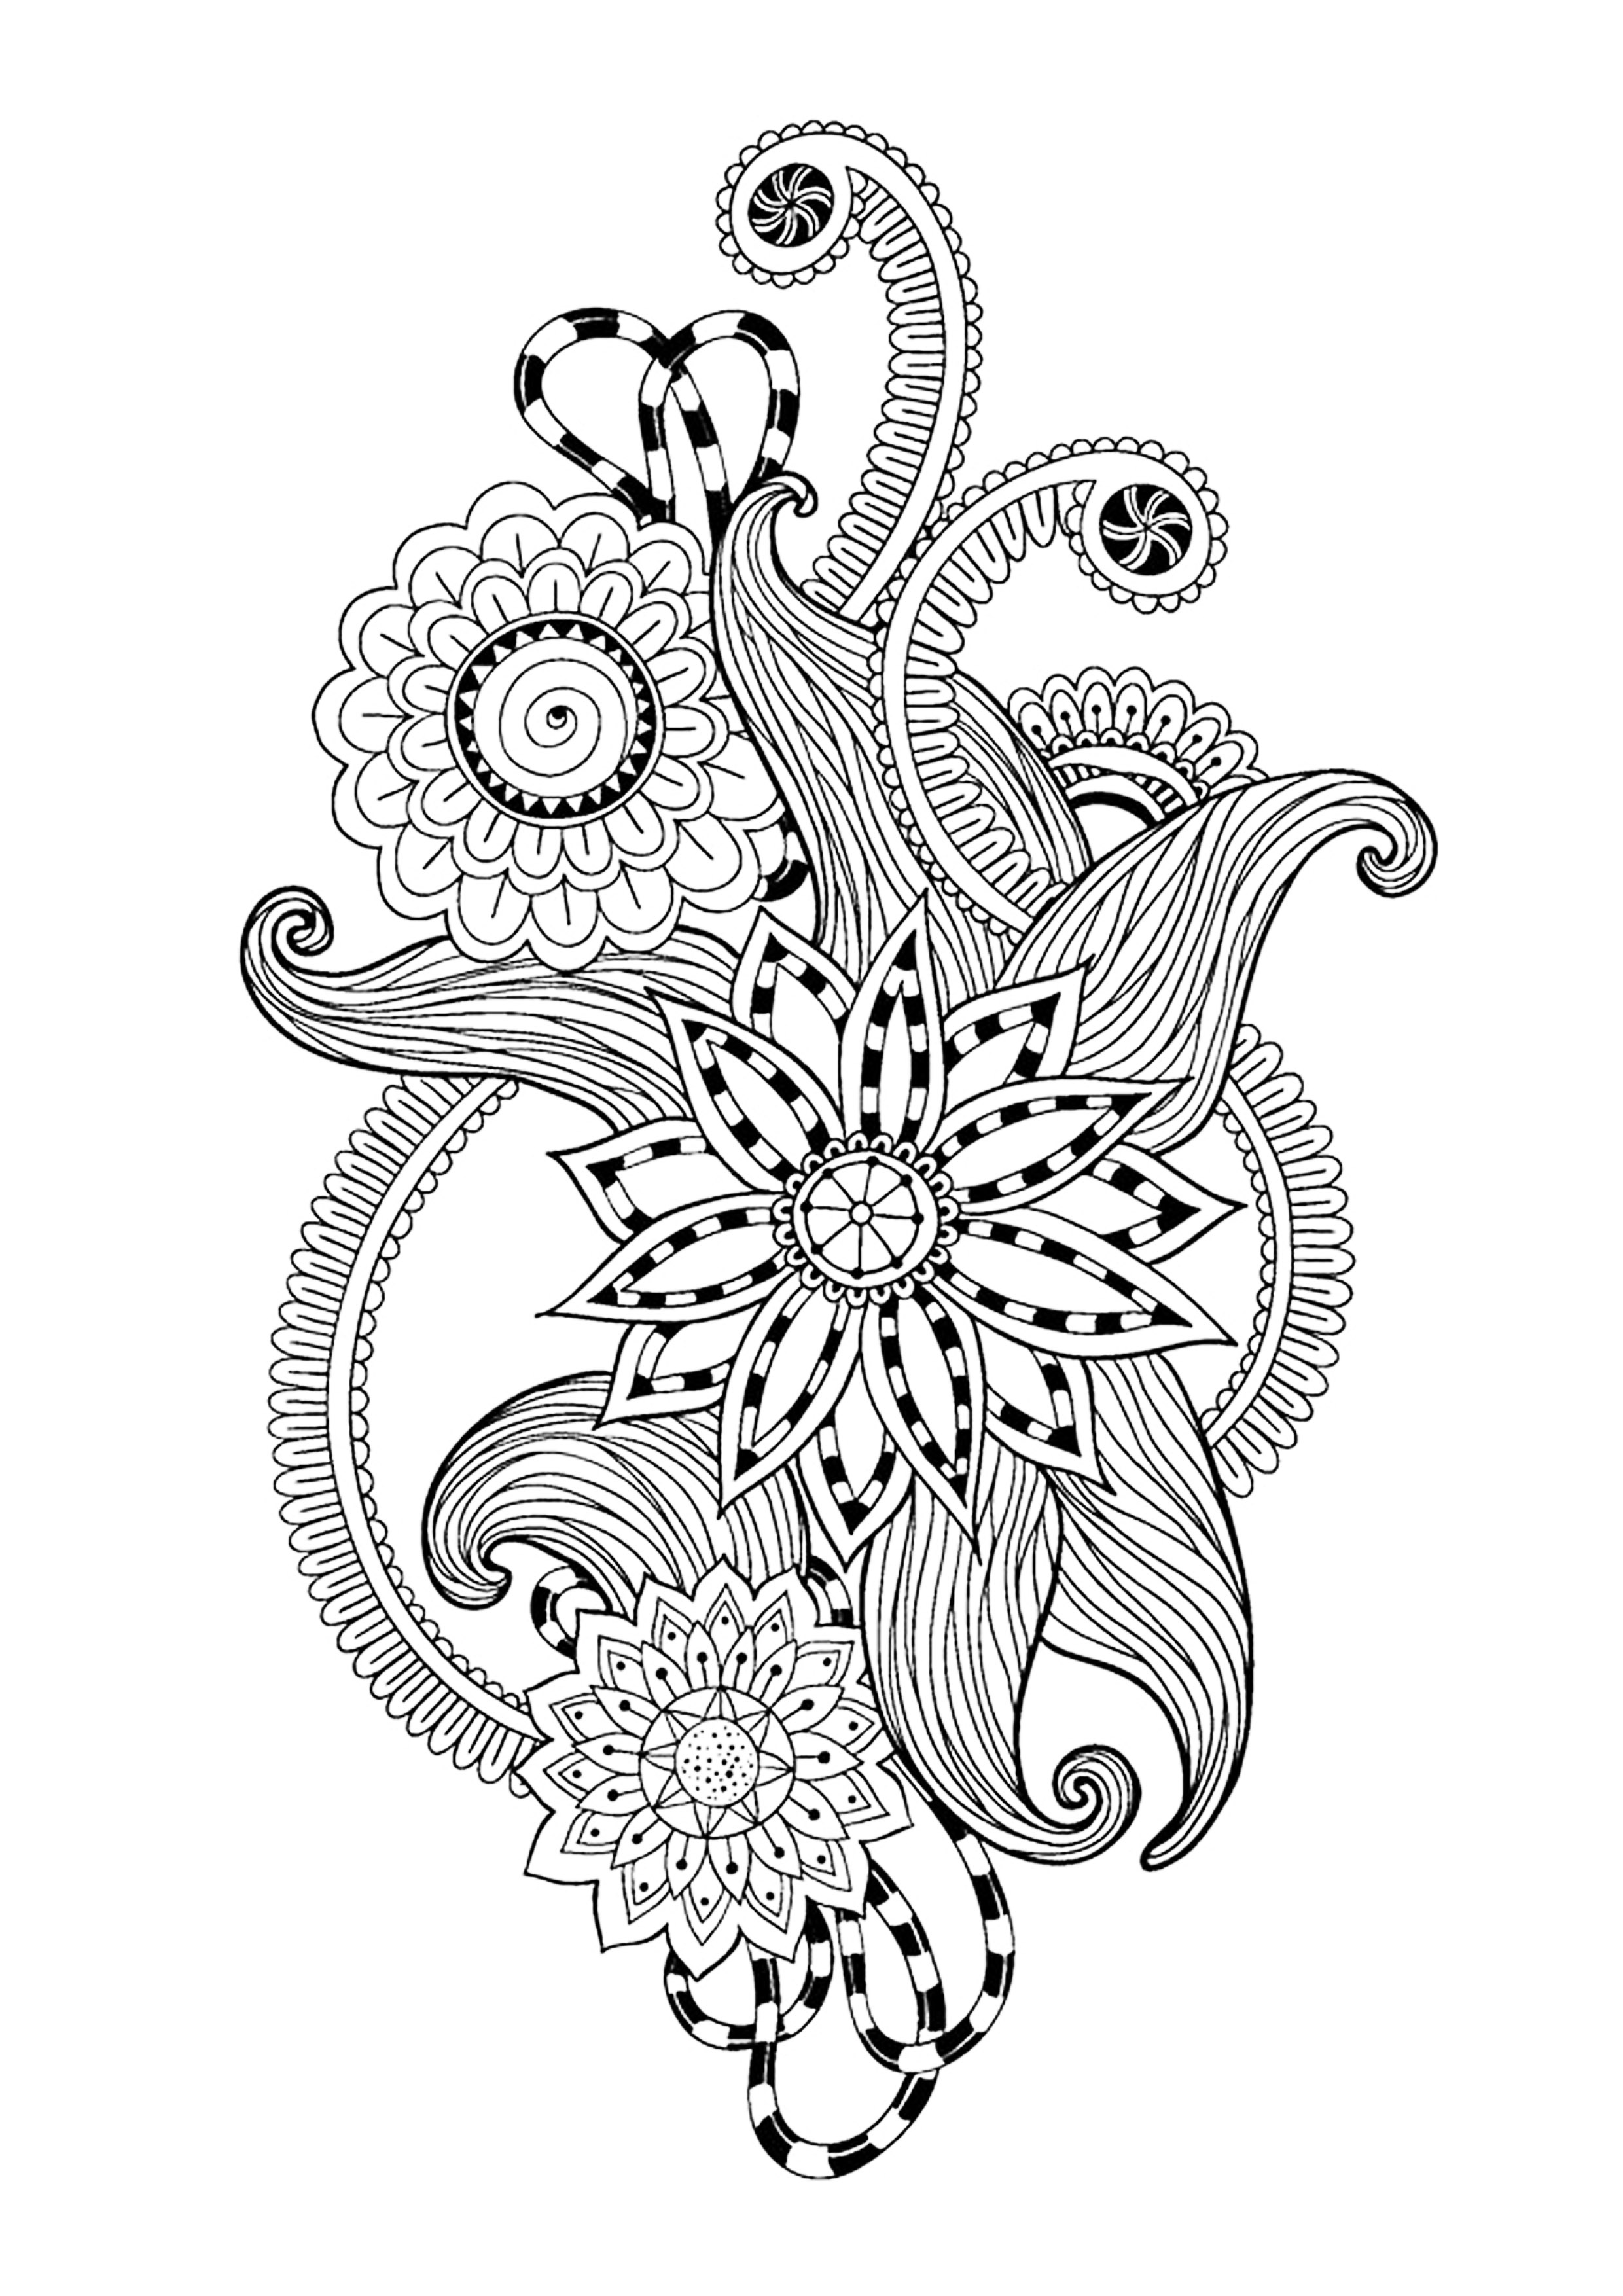 zen art coloring pages zen antistress abstract pattern inspired anti stress coloring zen art pages